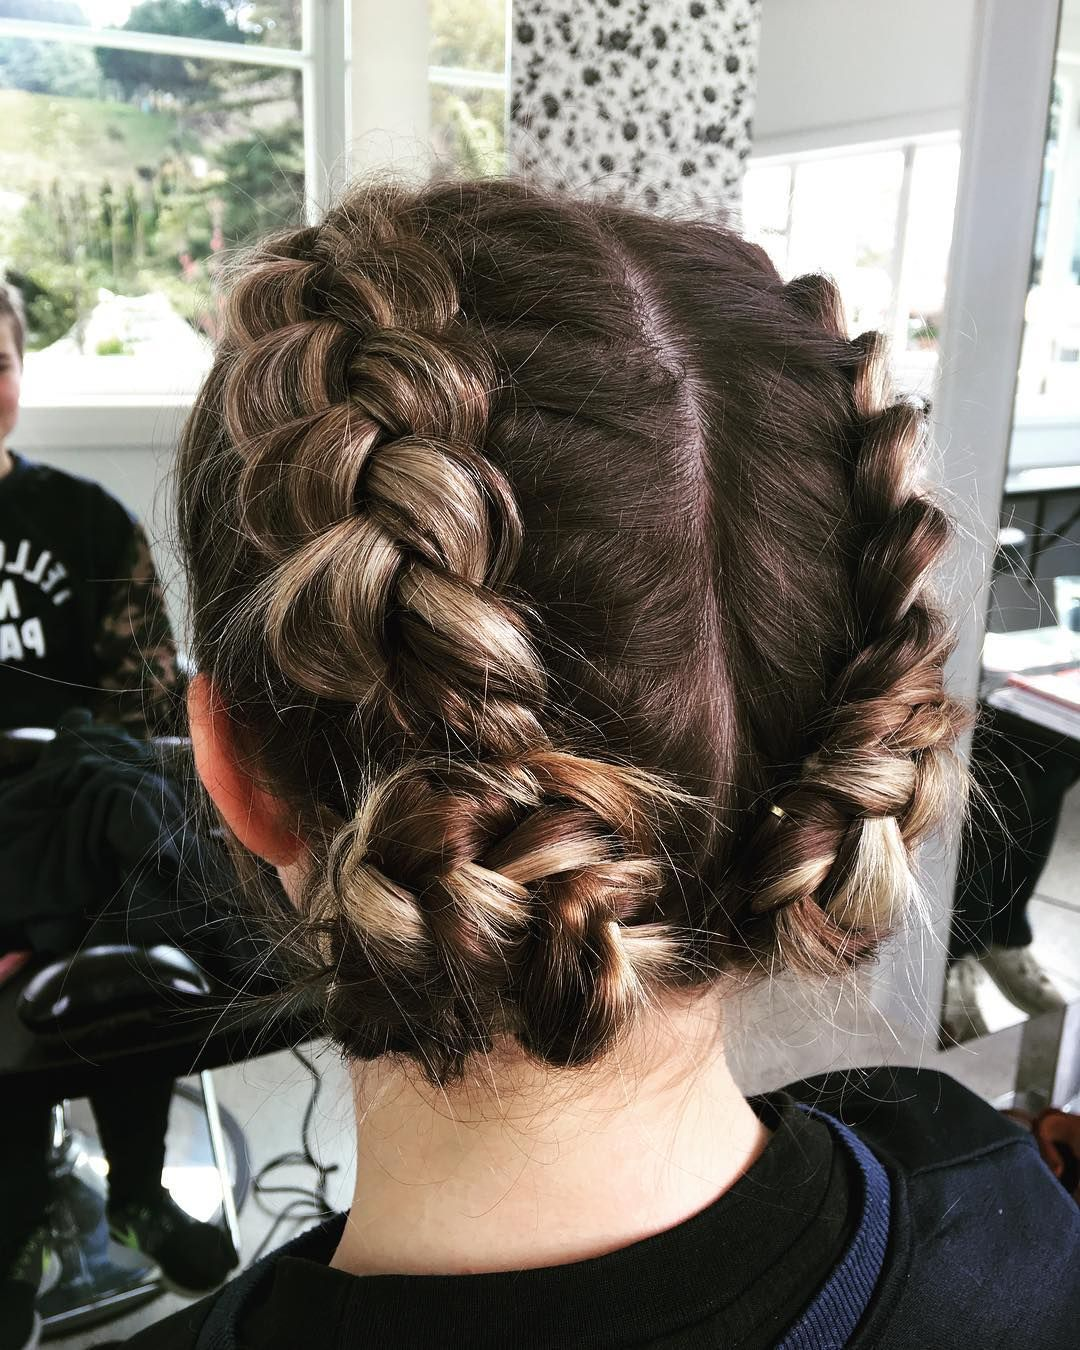 Turning My Passion For Hair Styling Into A Career By Starting A